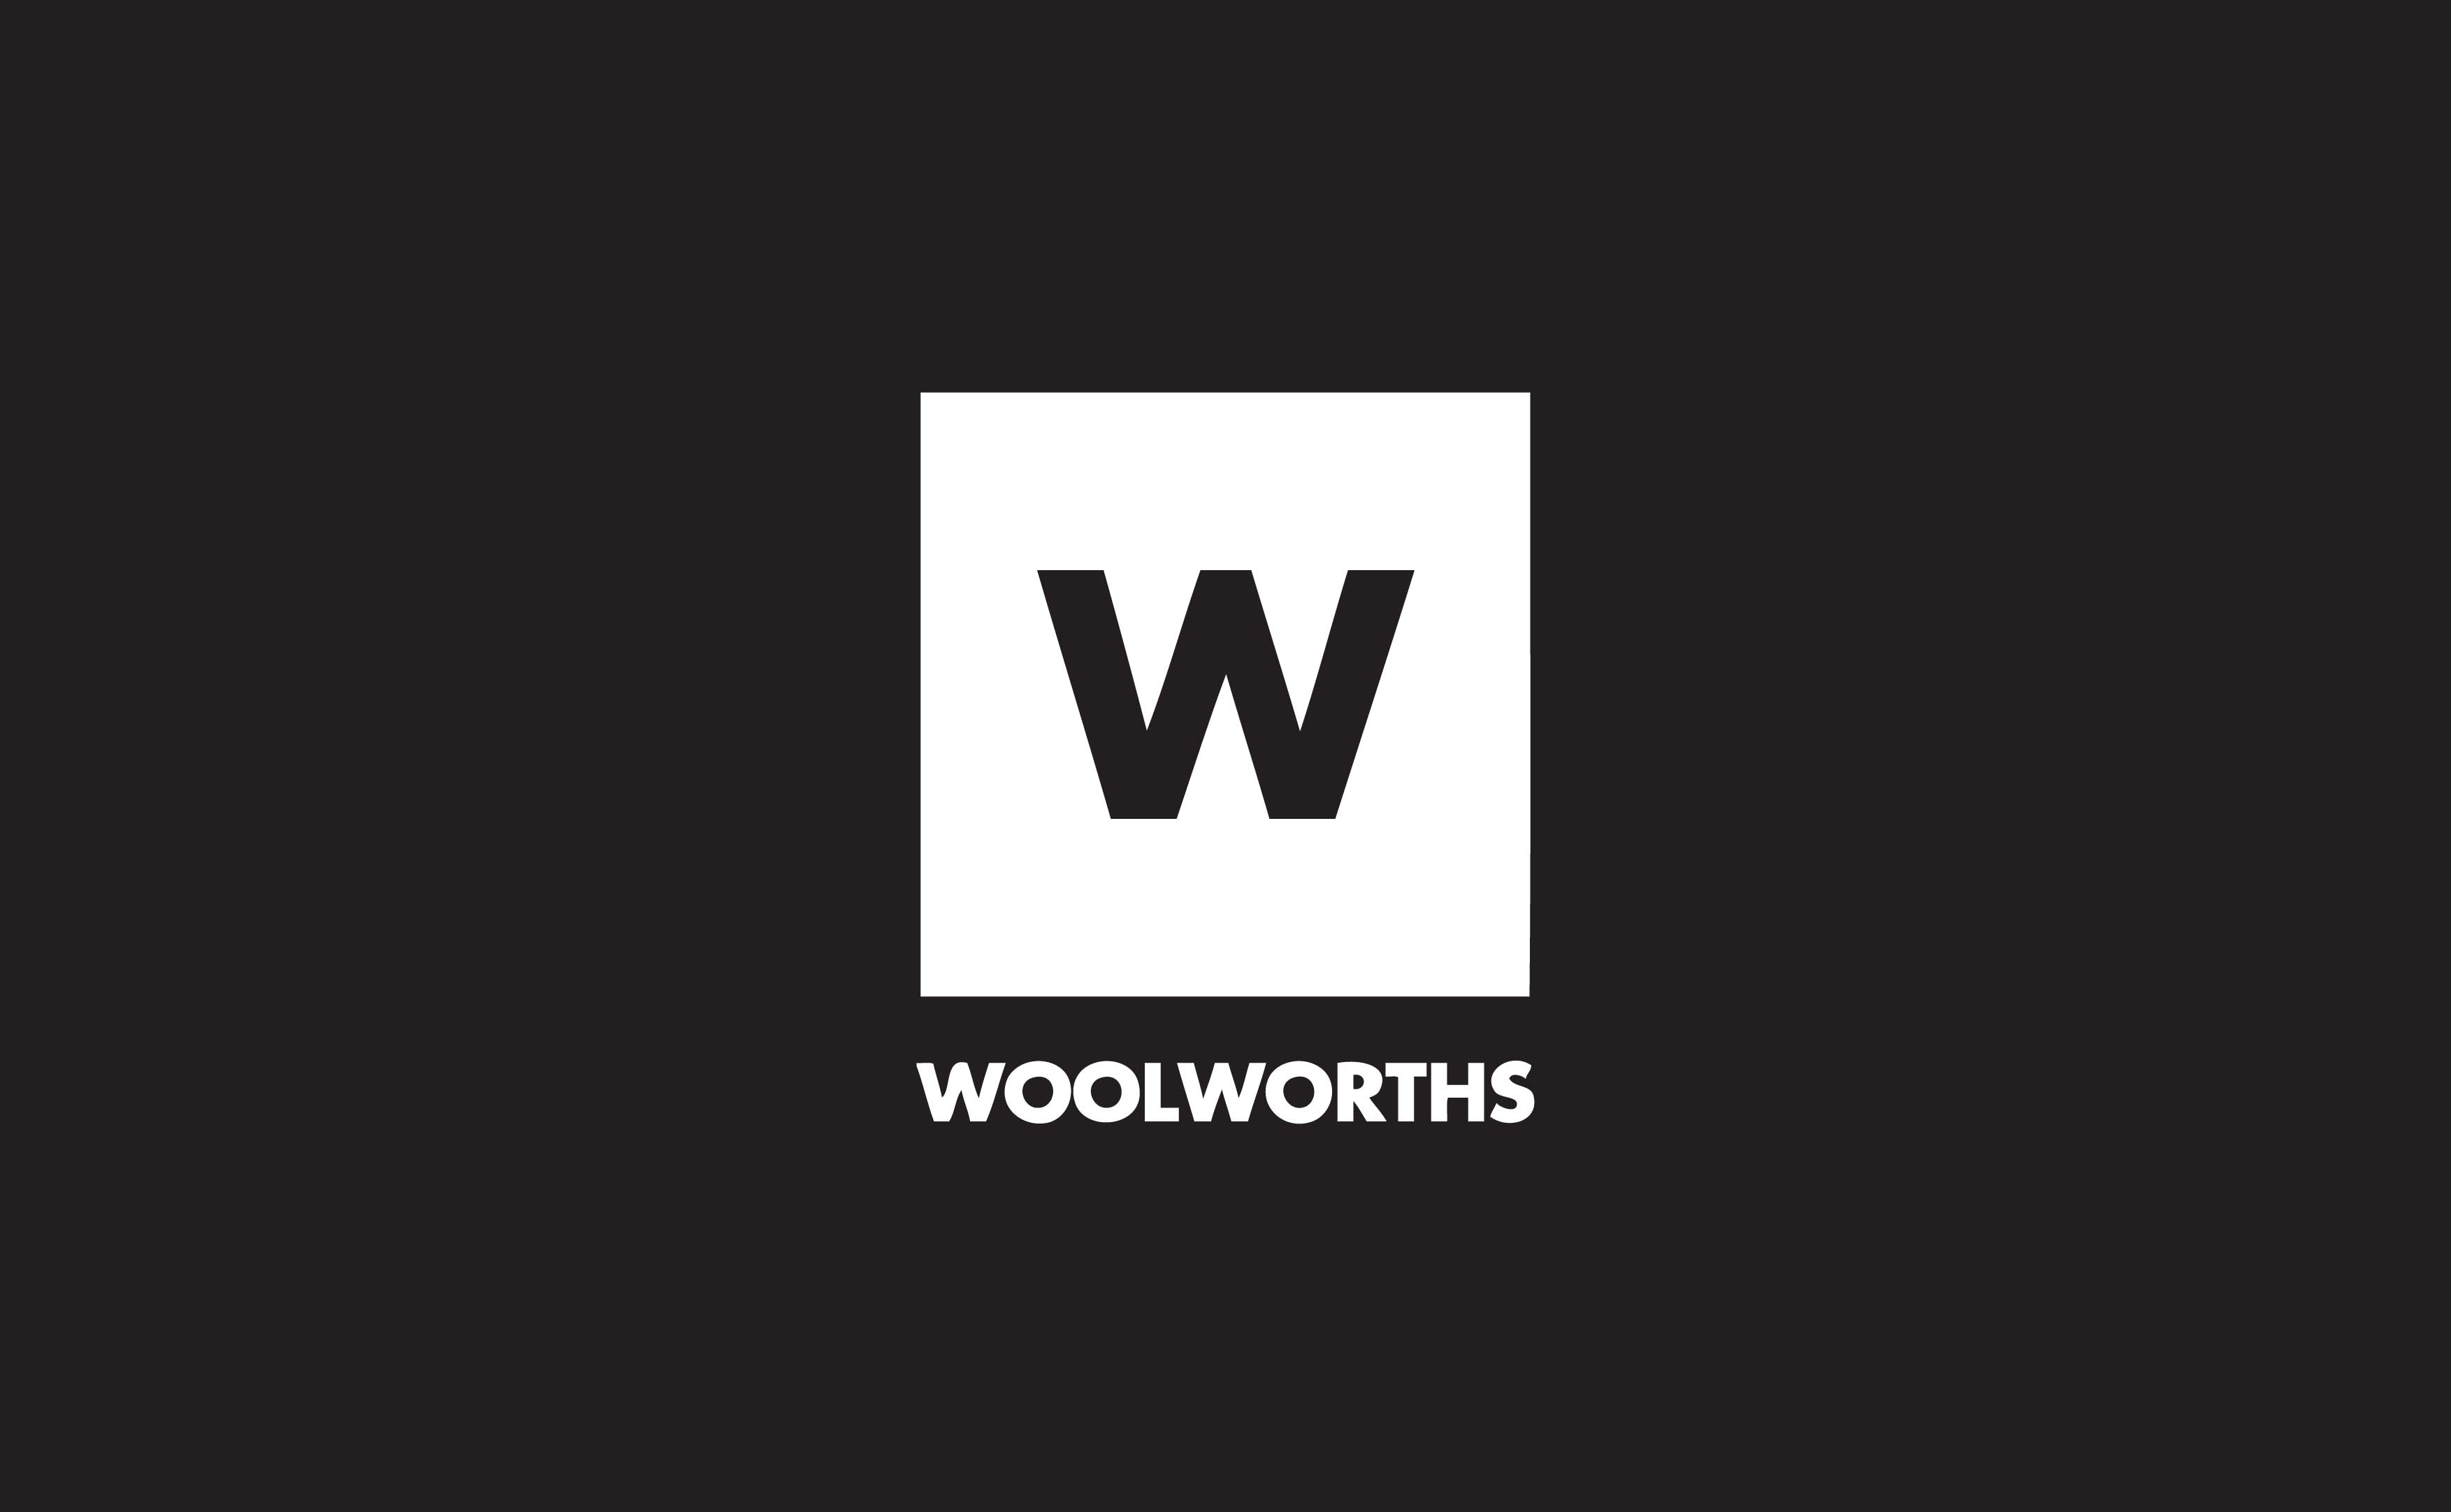 woolworths capabilities Strategic management group assignment 1 the ability to outperform its rivals and maintain its competitive edge rests on woolworths resources and capabilities.